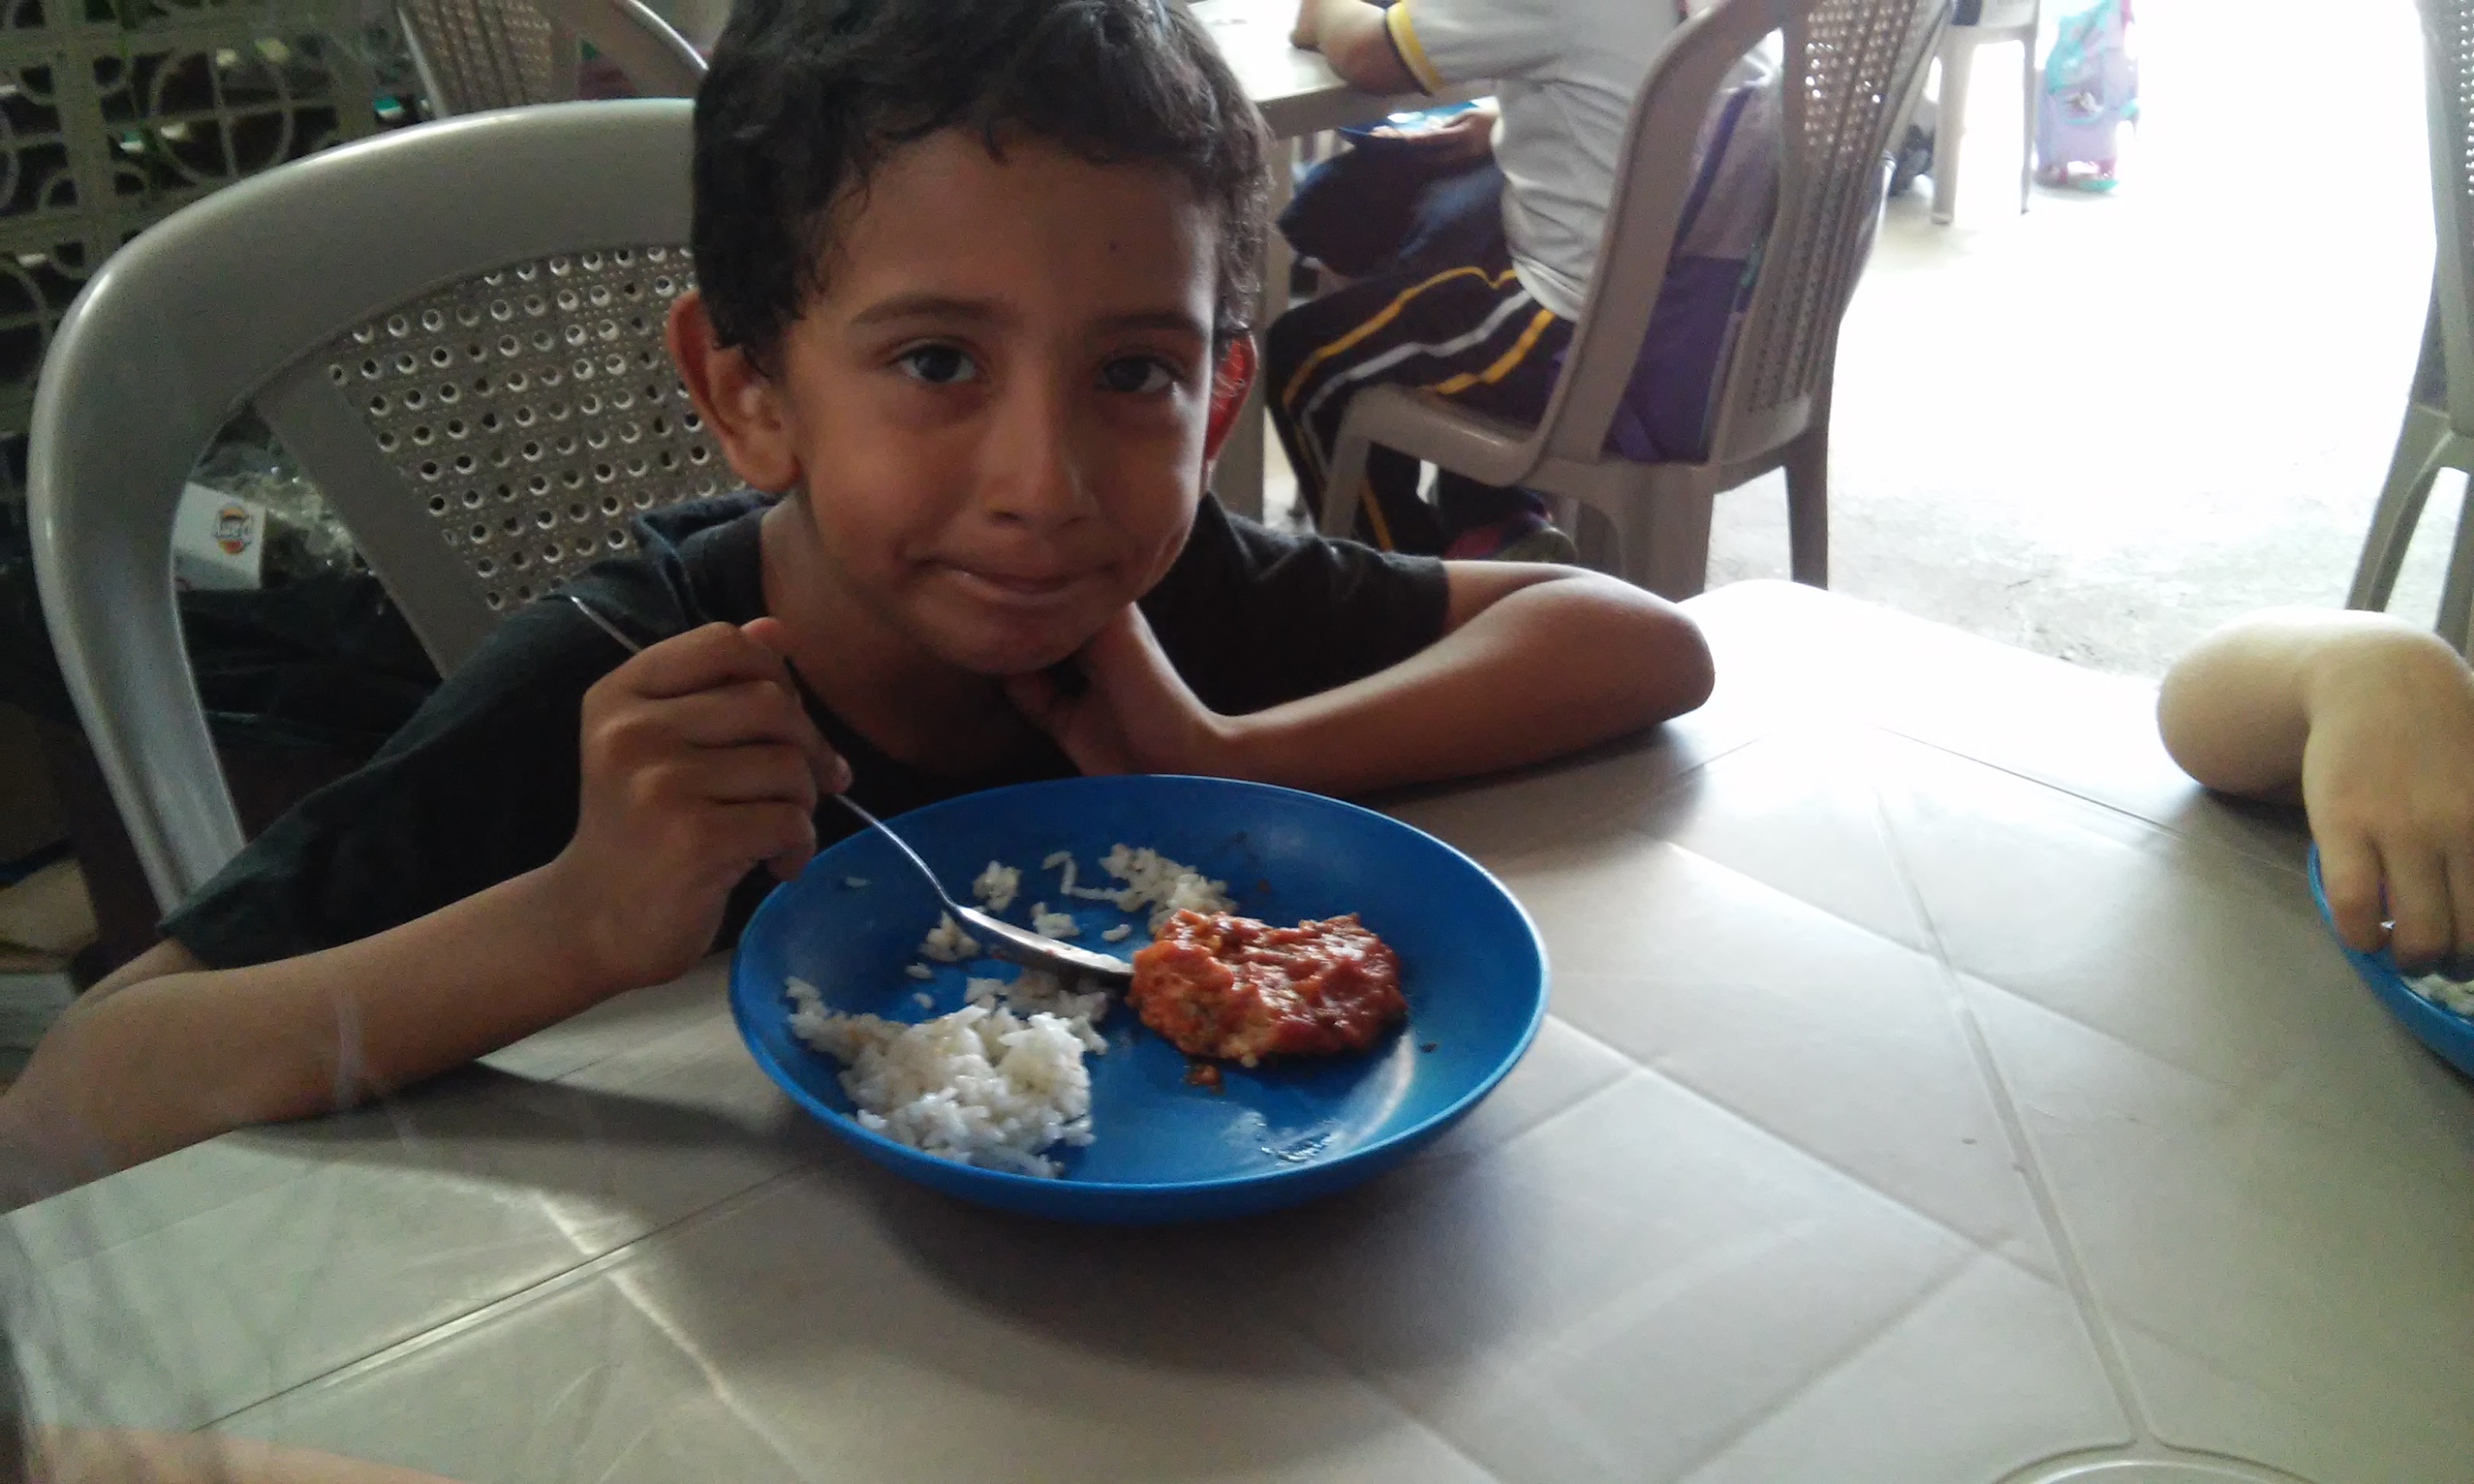 EL SALVADOR: Salesian Food Program Provides Meals to 150 Children Thanks to Donation from Feed My Starving Children